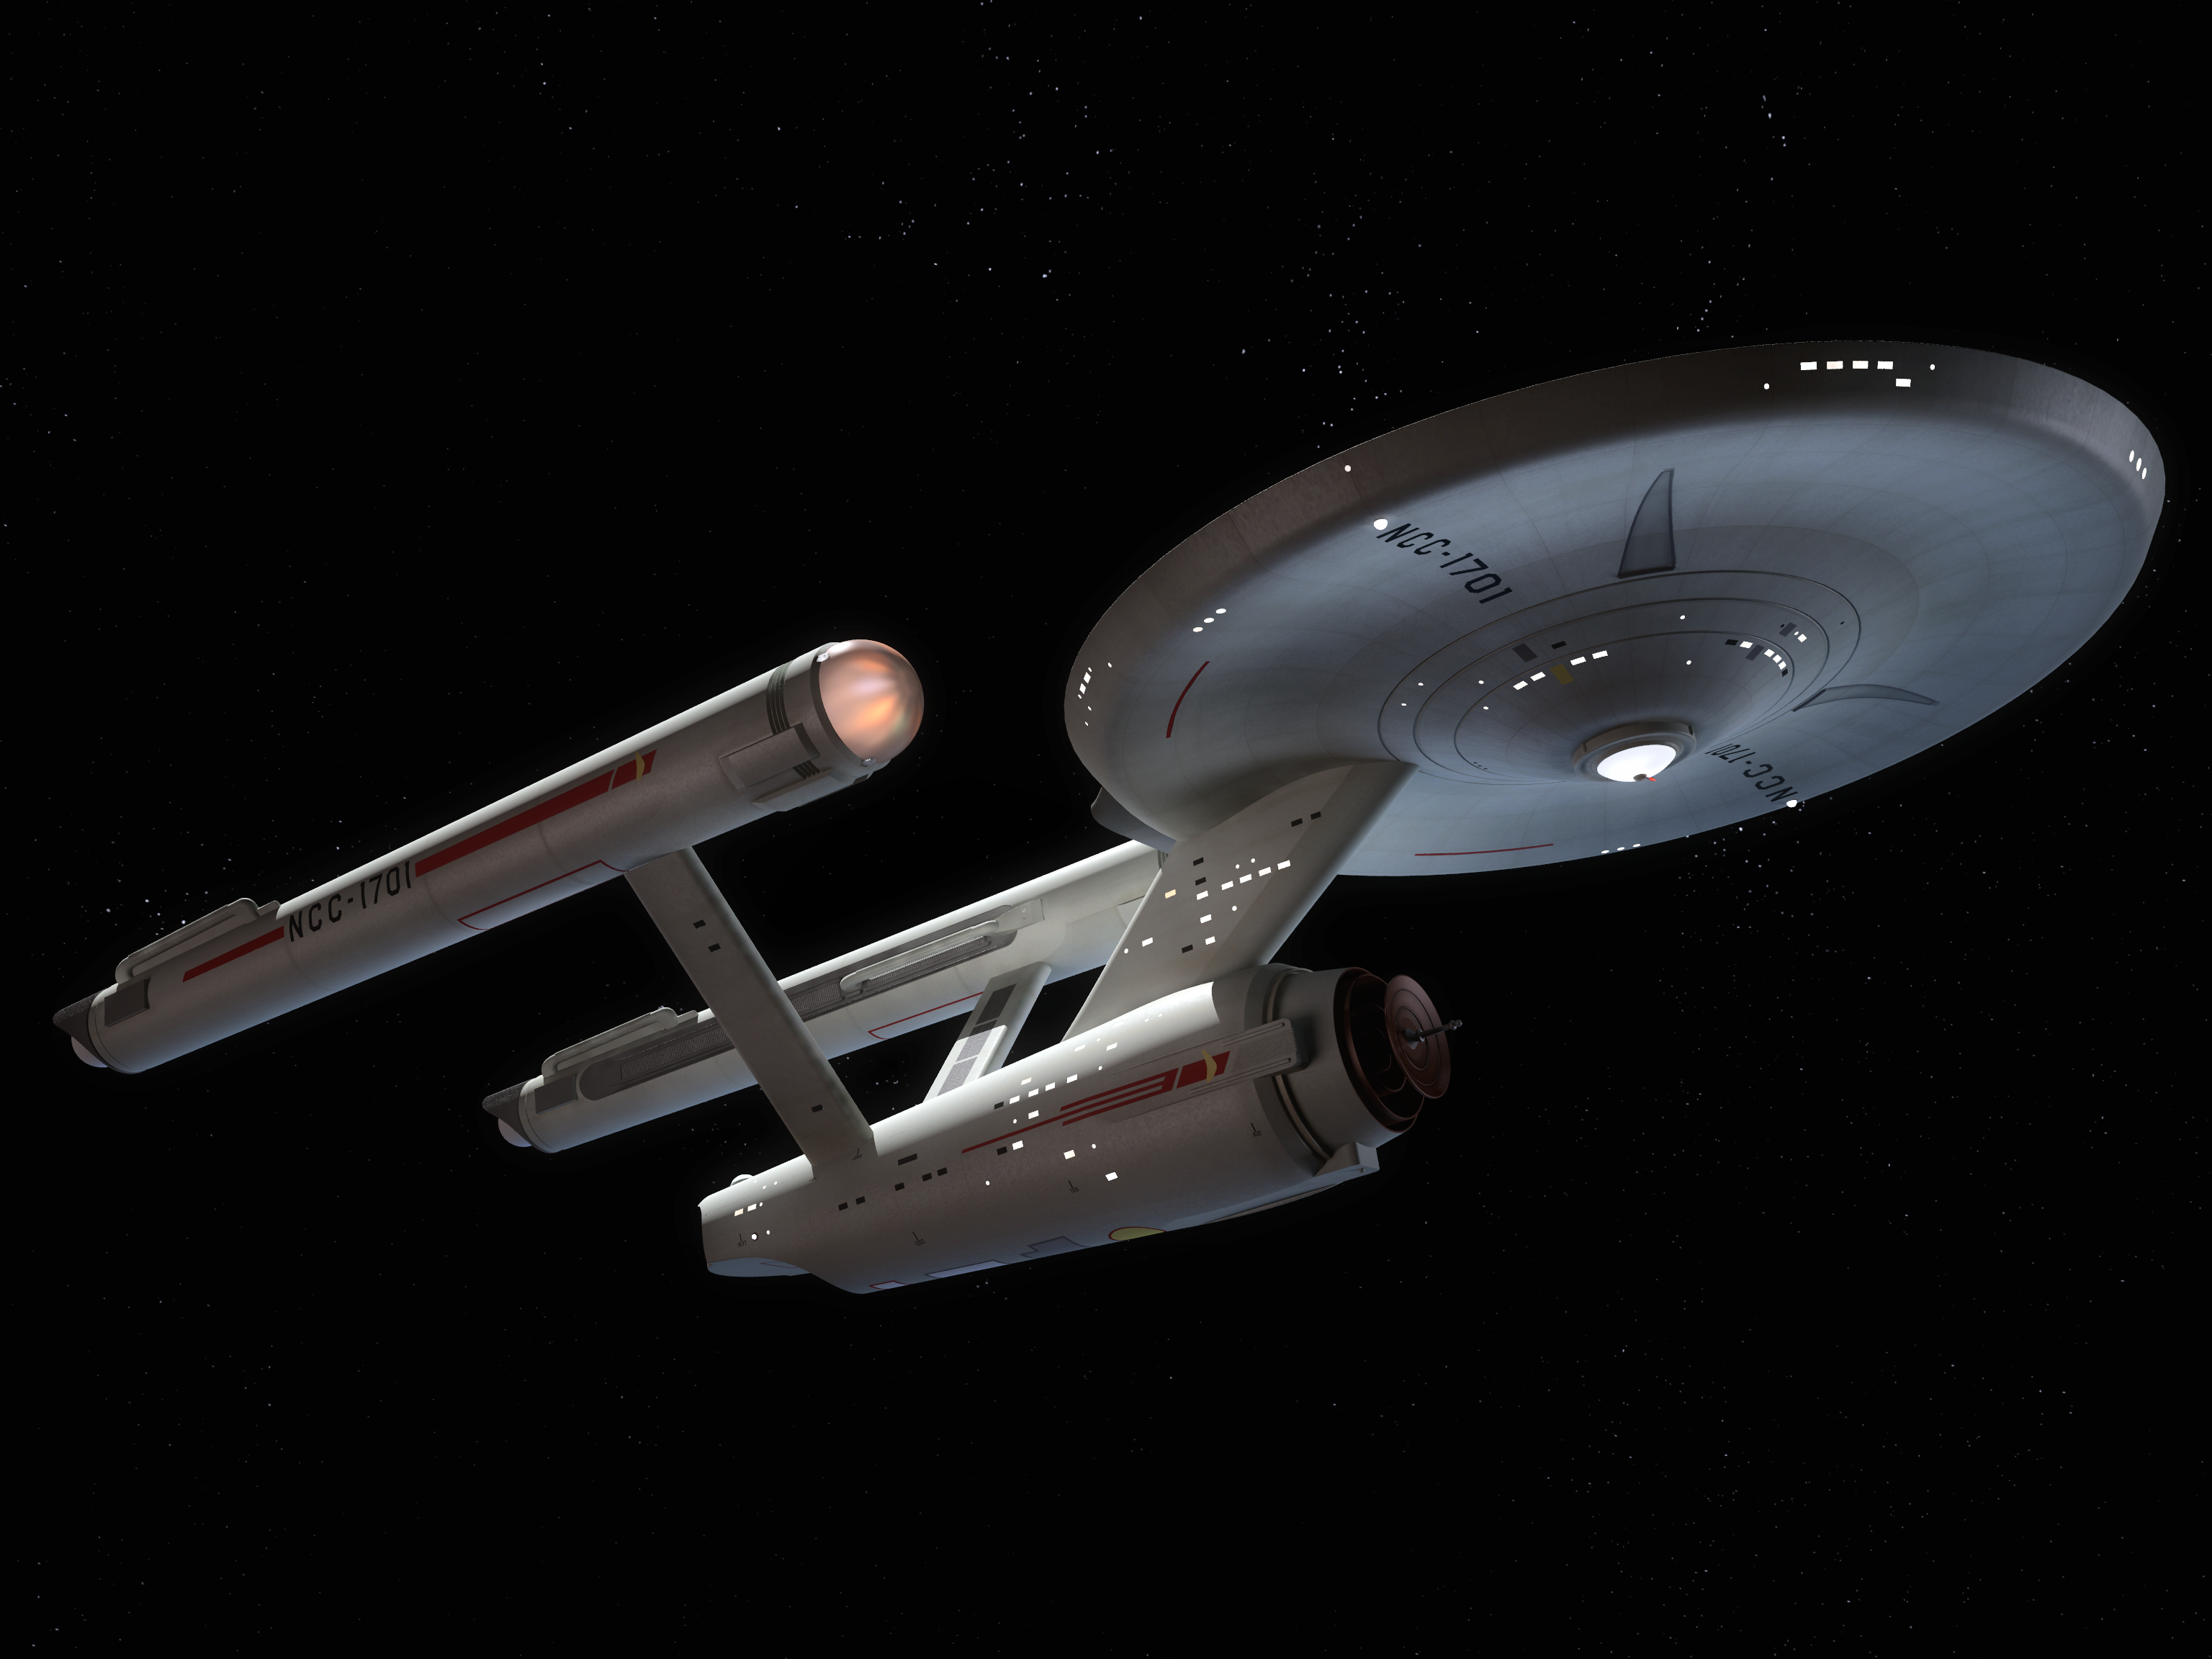 Renderings Of The Starship Enterprise For Round 2 Llc For Packaging And Brochure Illustrations Of Their 1 X2 Star Trek Art Uss Enterprise Starship Enterprise